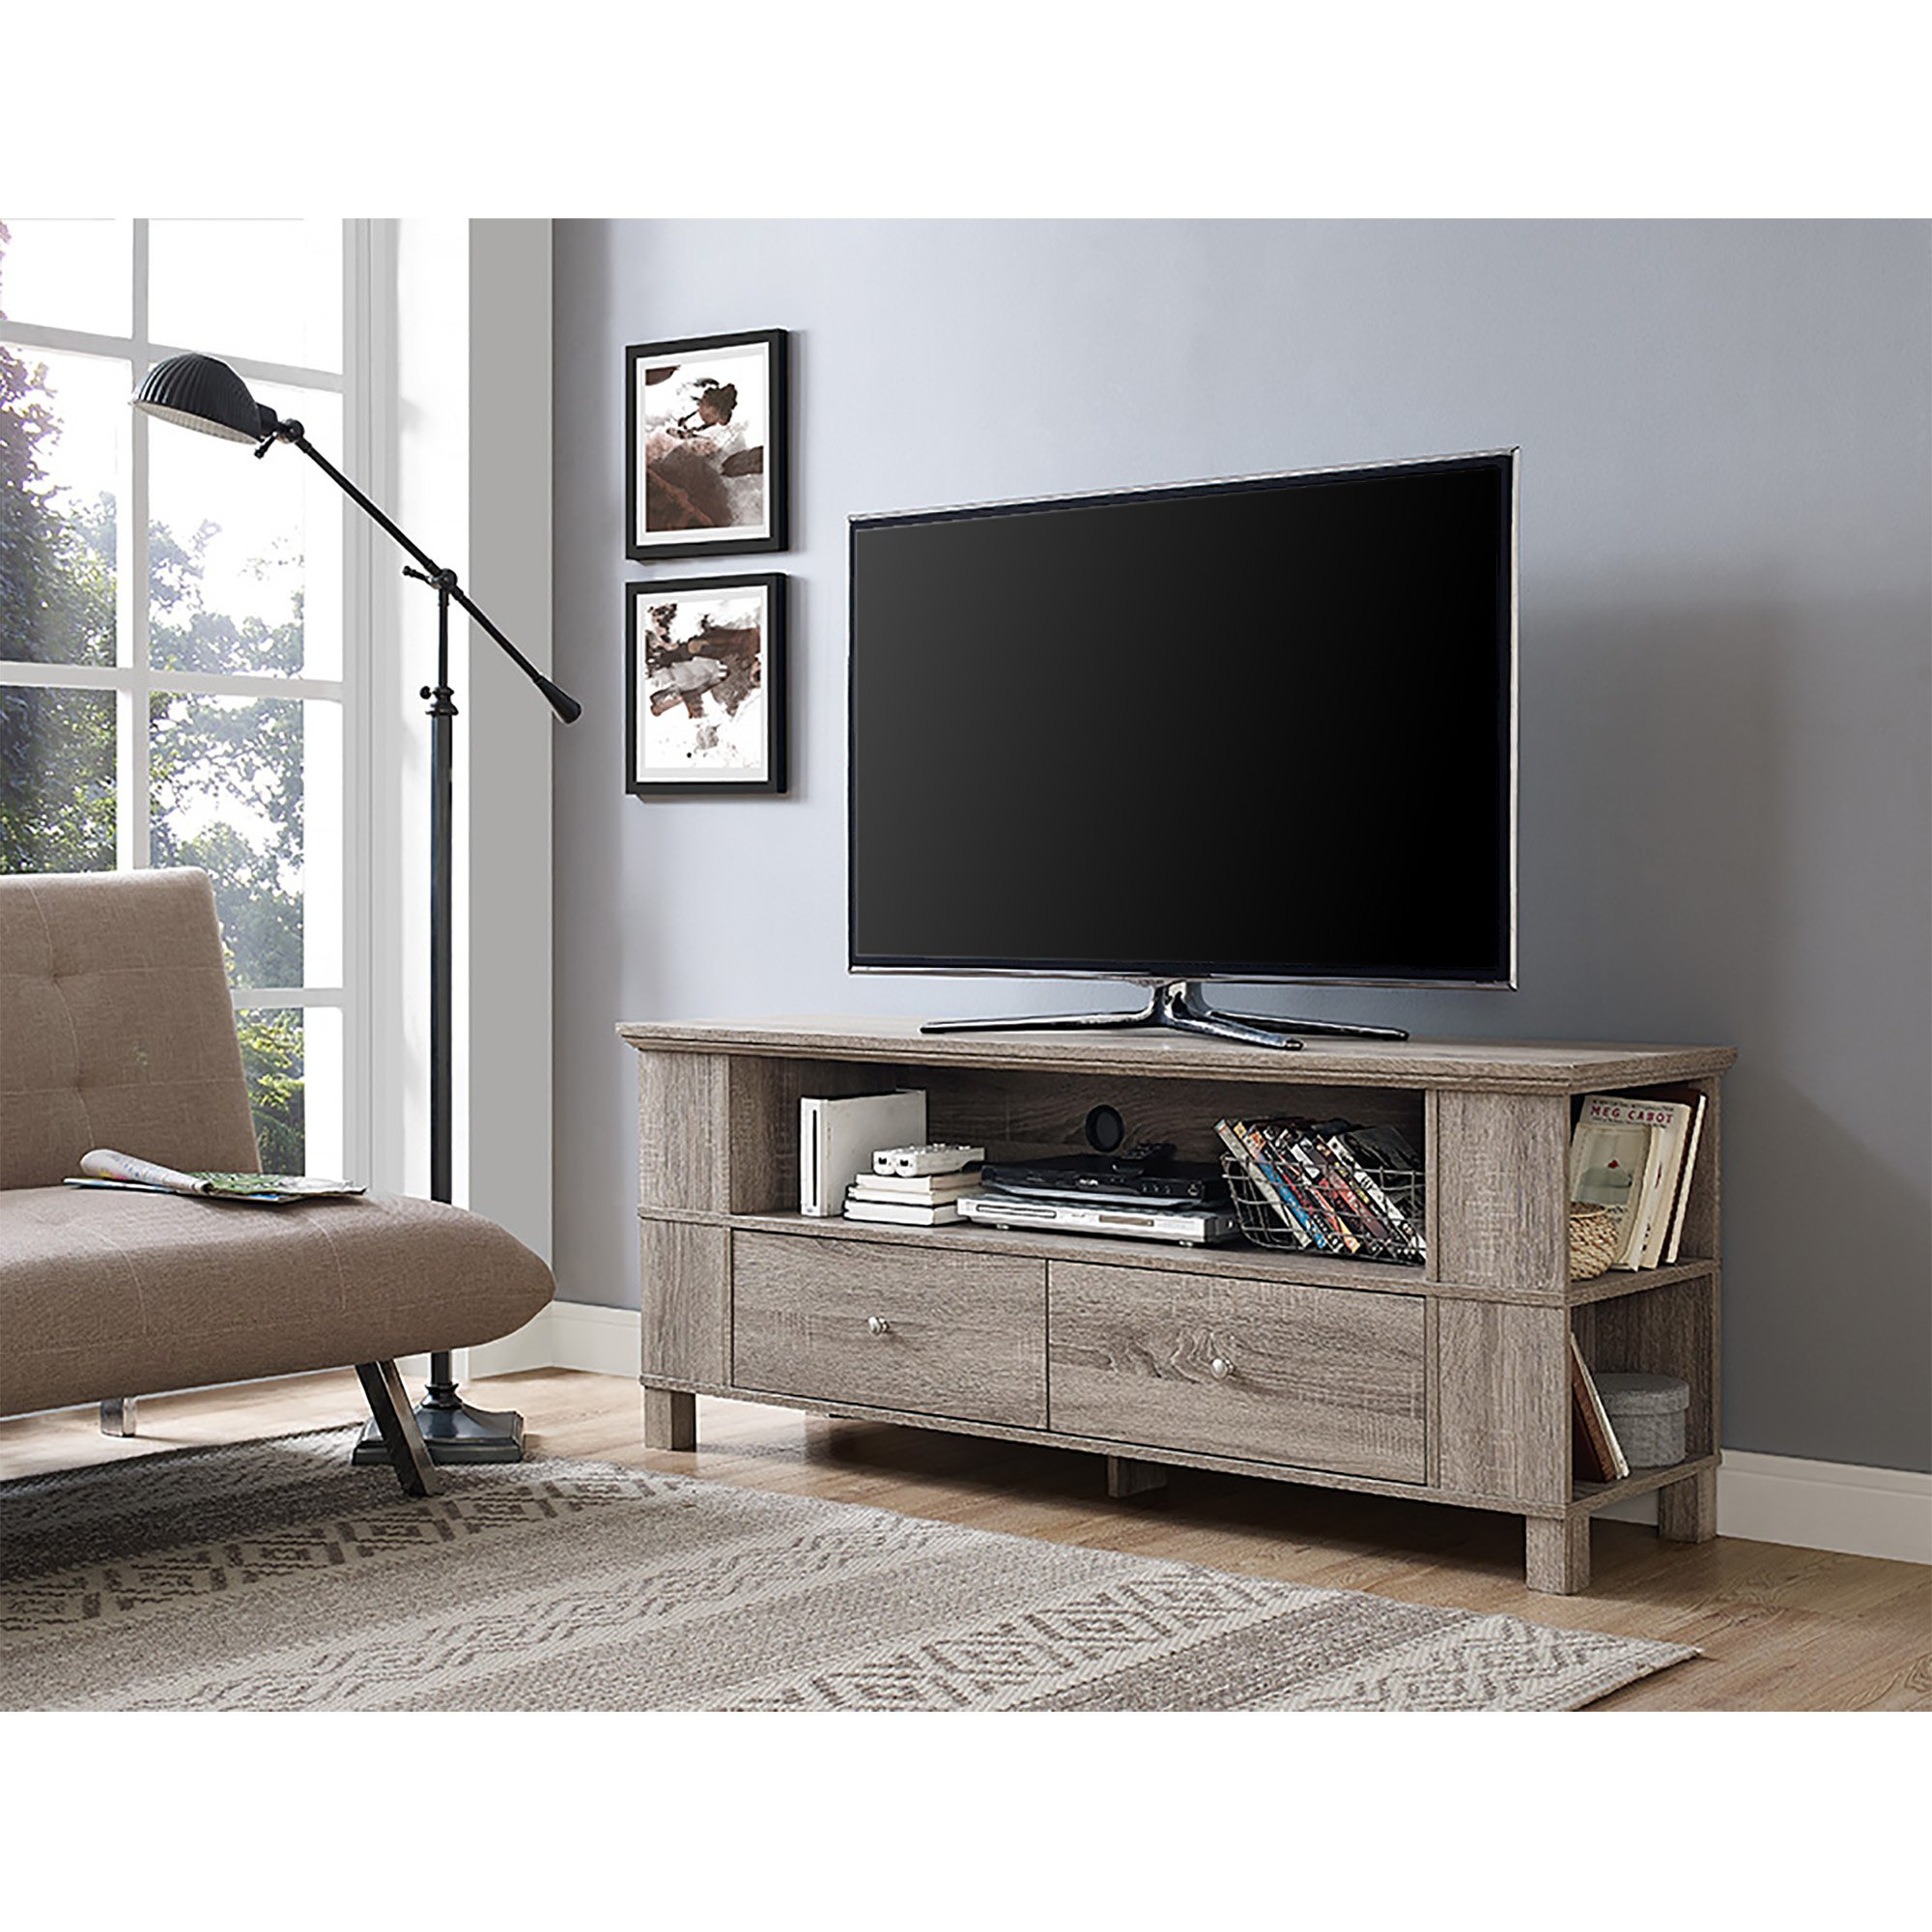 New 59 Inch Wide Driftwood Finish Tv Stand with Drawers and Side Storage